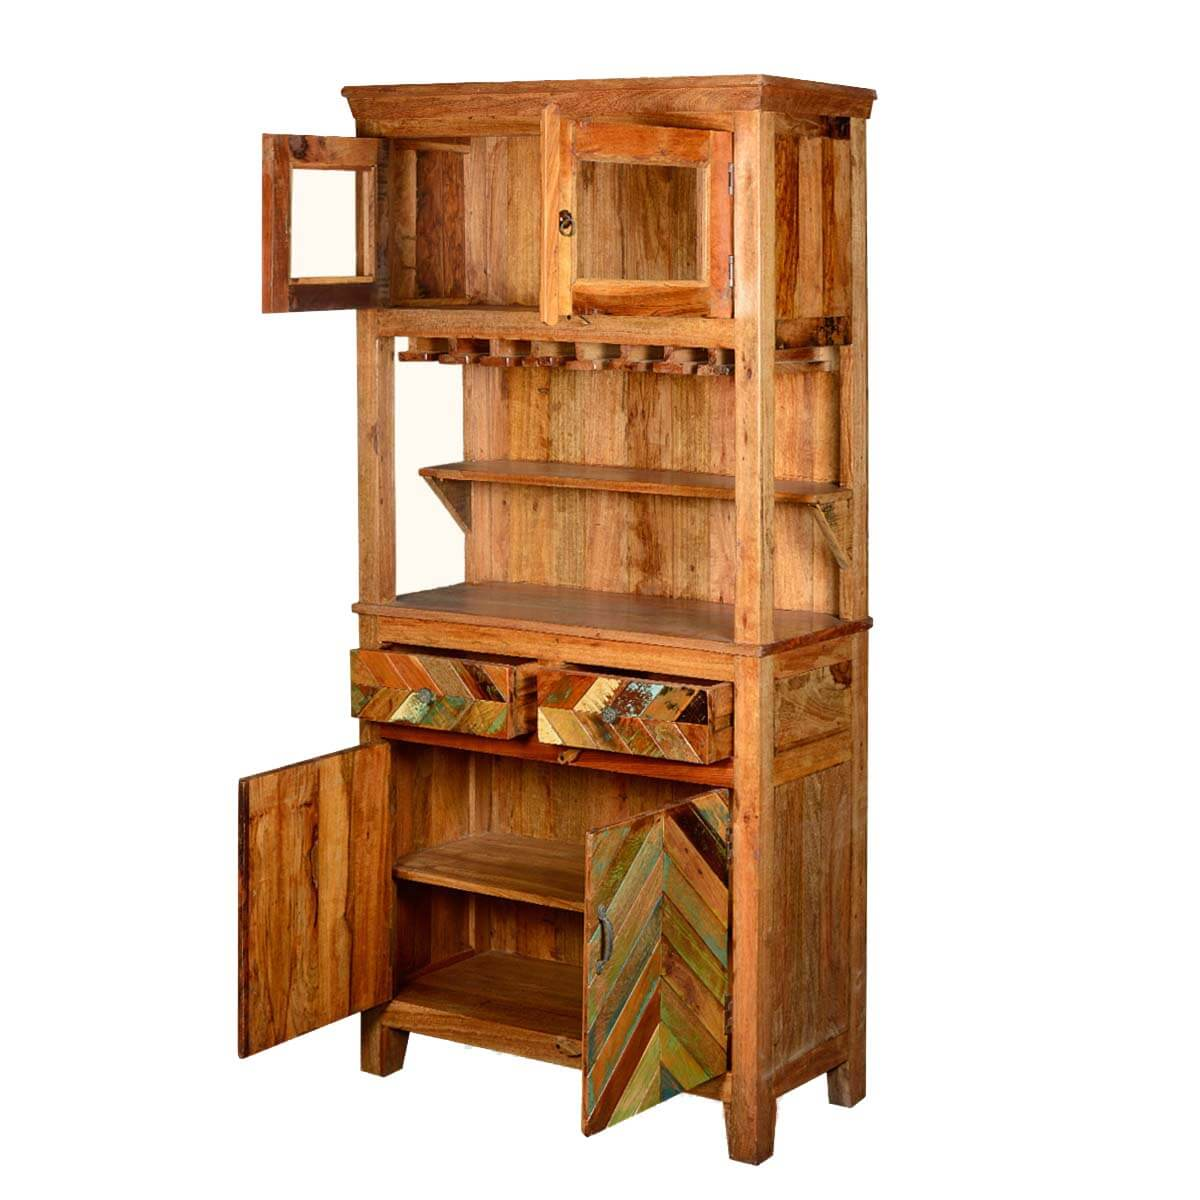 Rustic Reclaimed Wood Wine Bar Hutch Sideboard With Glass